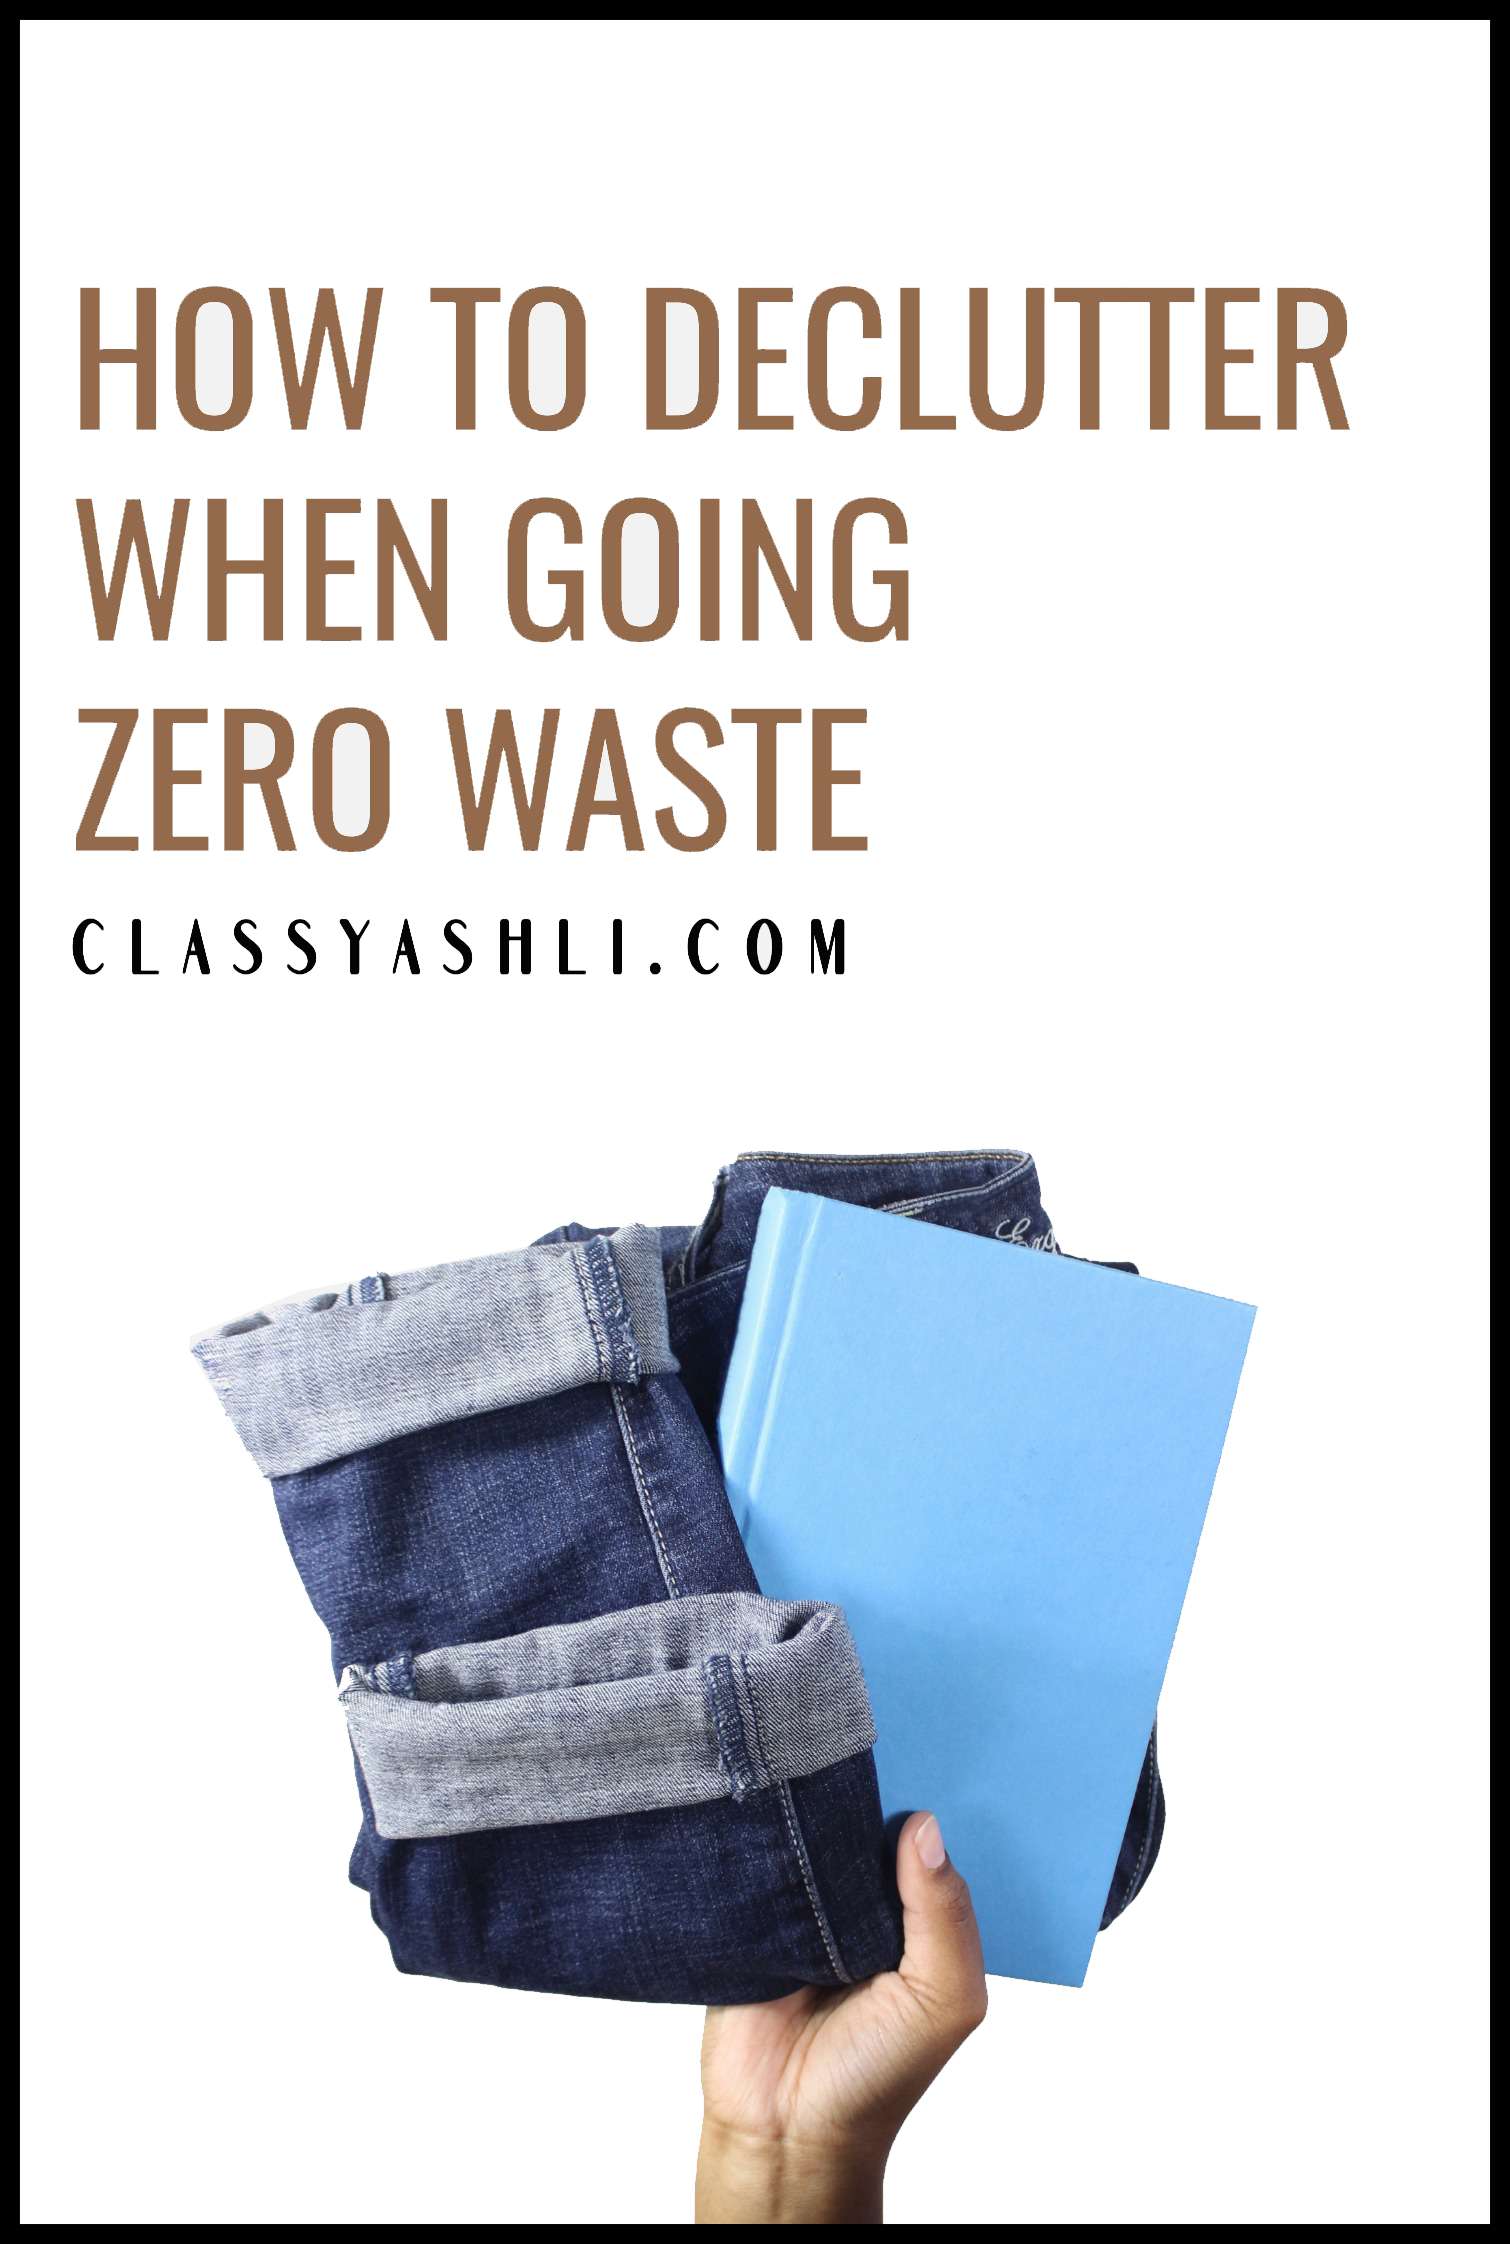 How to Declutter when going zero waste - Posted by Ashli Cooper of ClassyAshli